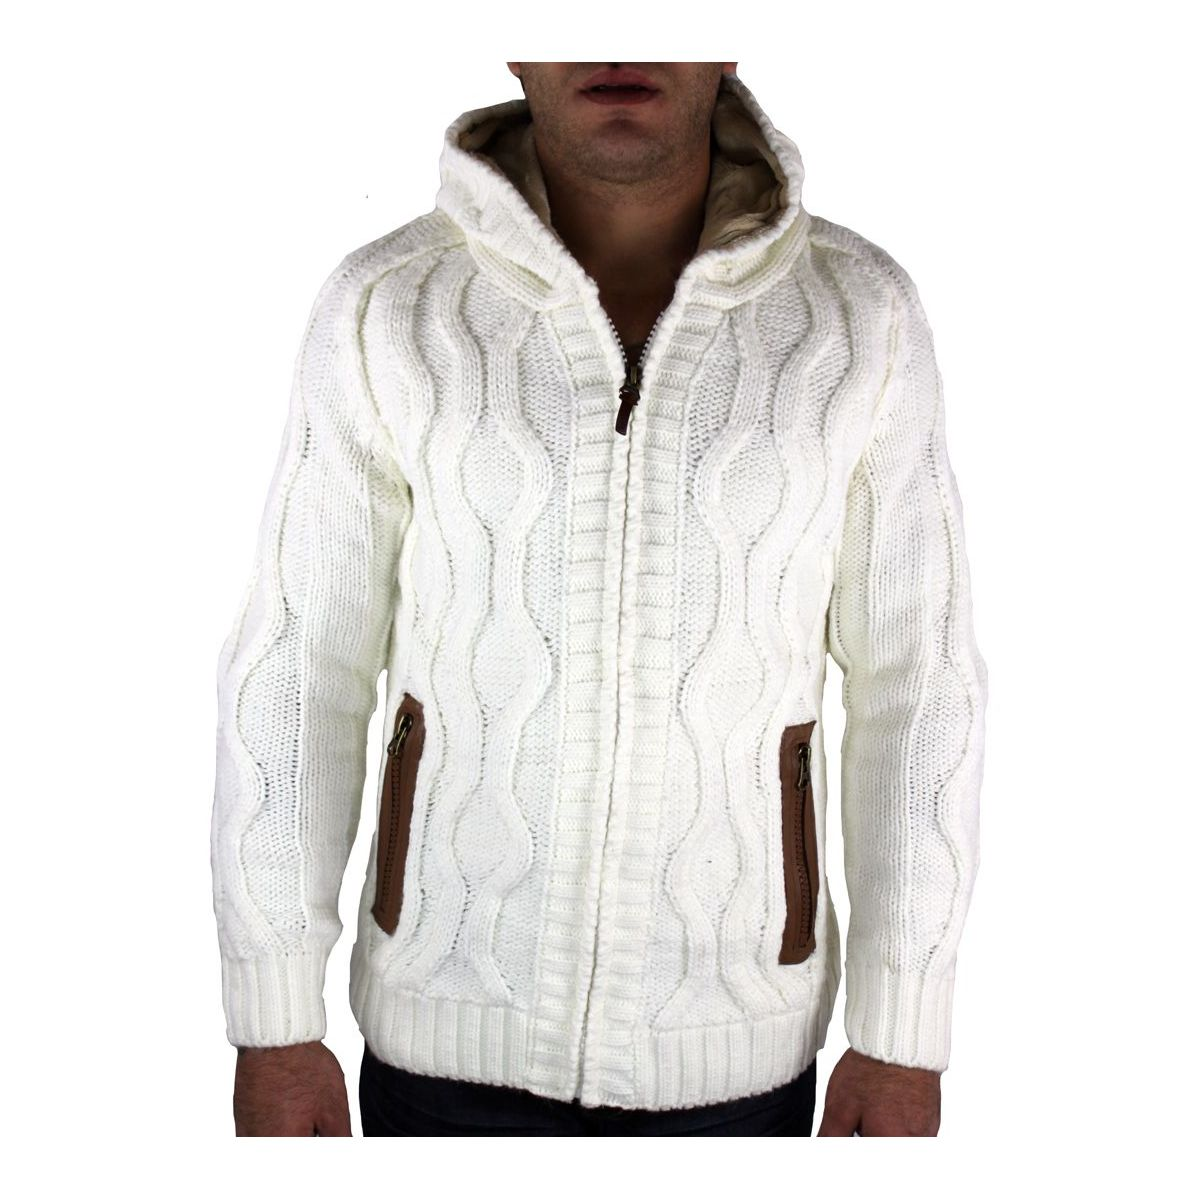 look out for special section new high Gilet homme blanc avec coudière camel pas cher